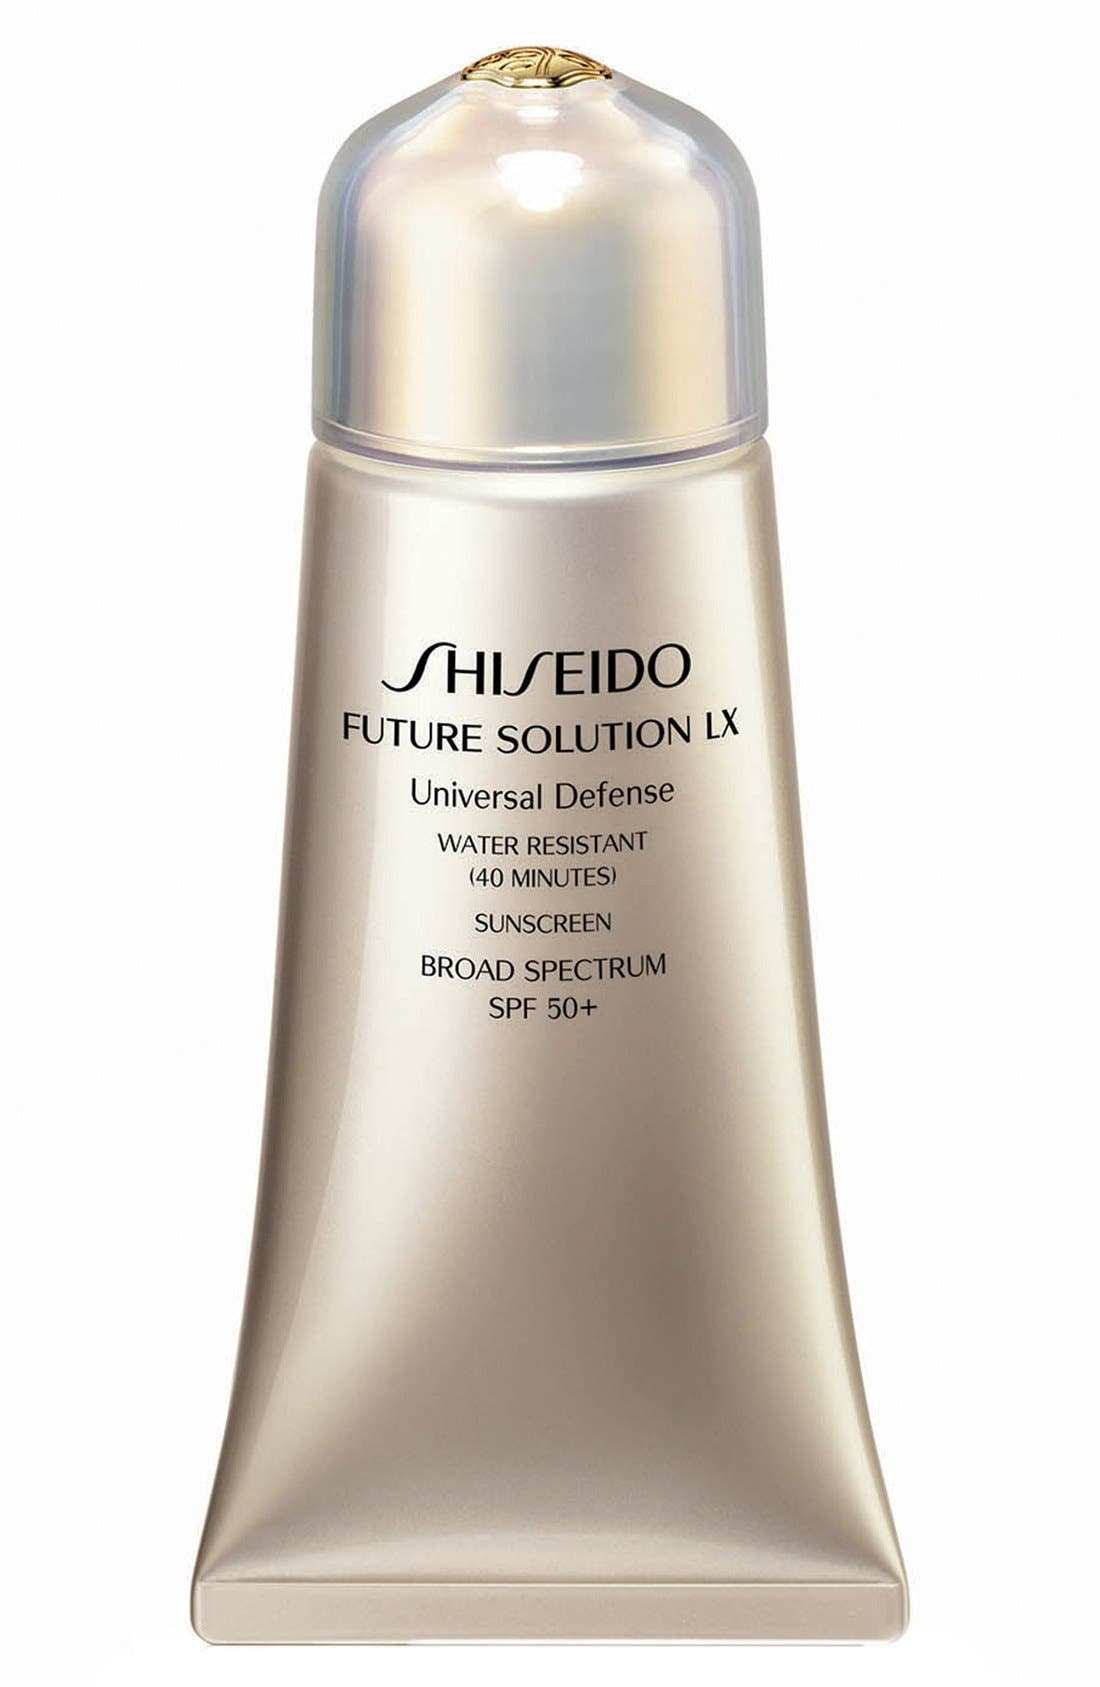 Shiseido 'Future Solution LX' Universal Defense SPF 50+